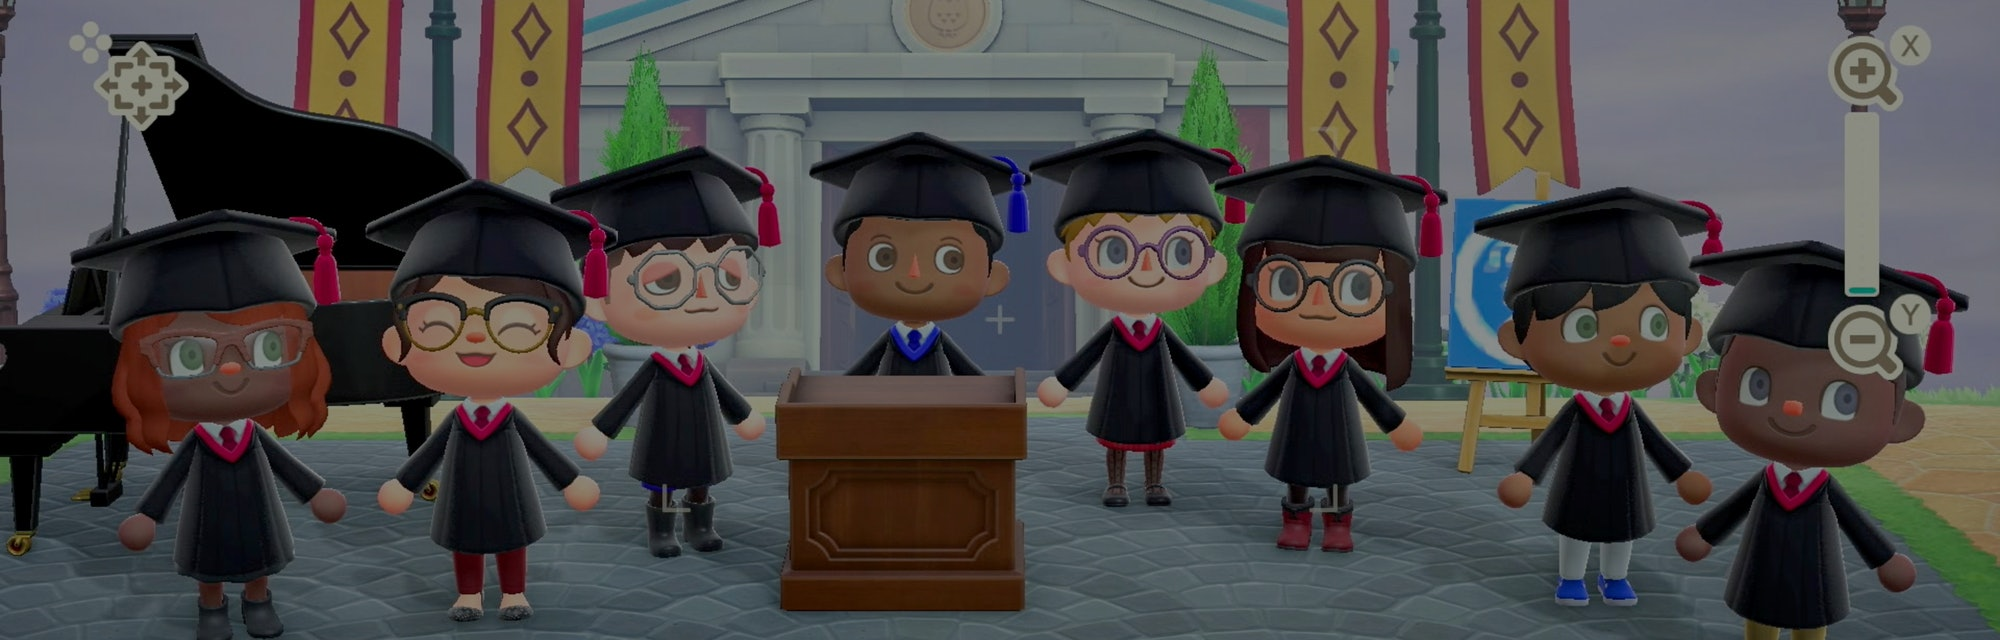 A group of different Animal Crossing players can be seen attending a virtual graduation. Each character is wearing the typical graduation garb, including hats and gowns. Several of them have eyeglasses.